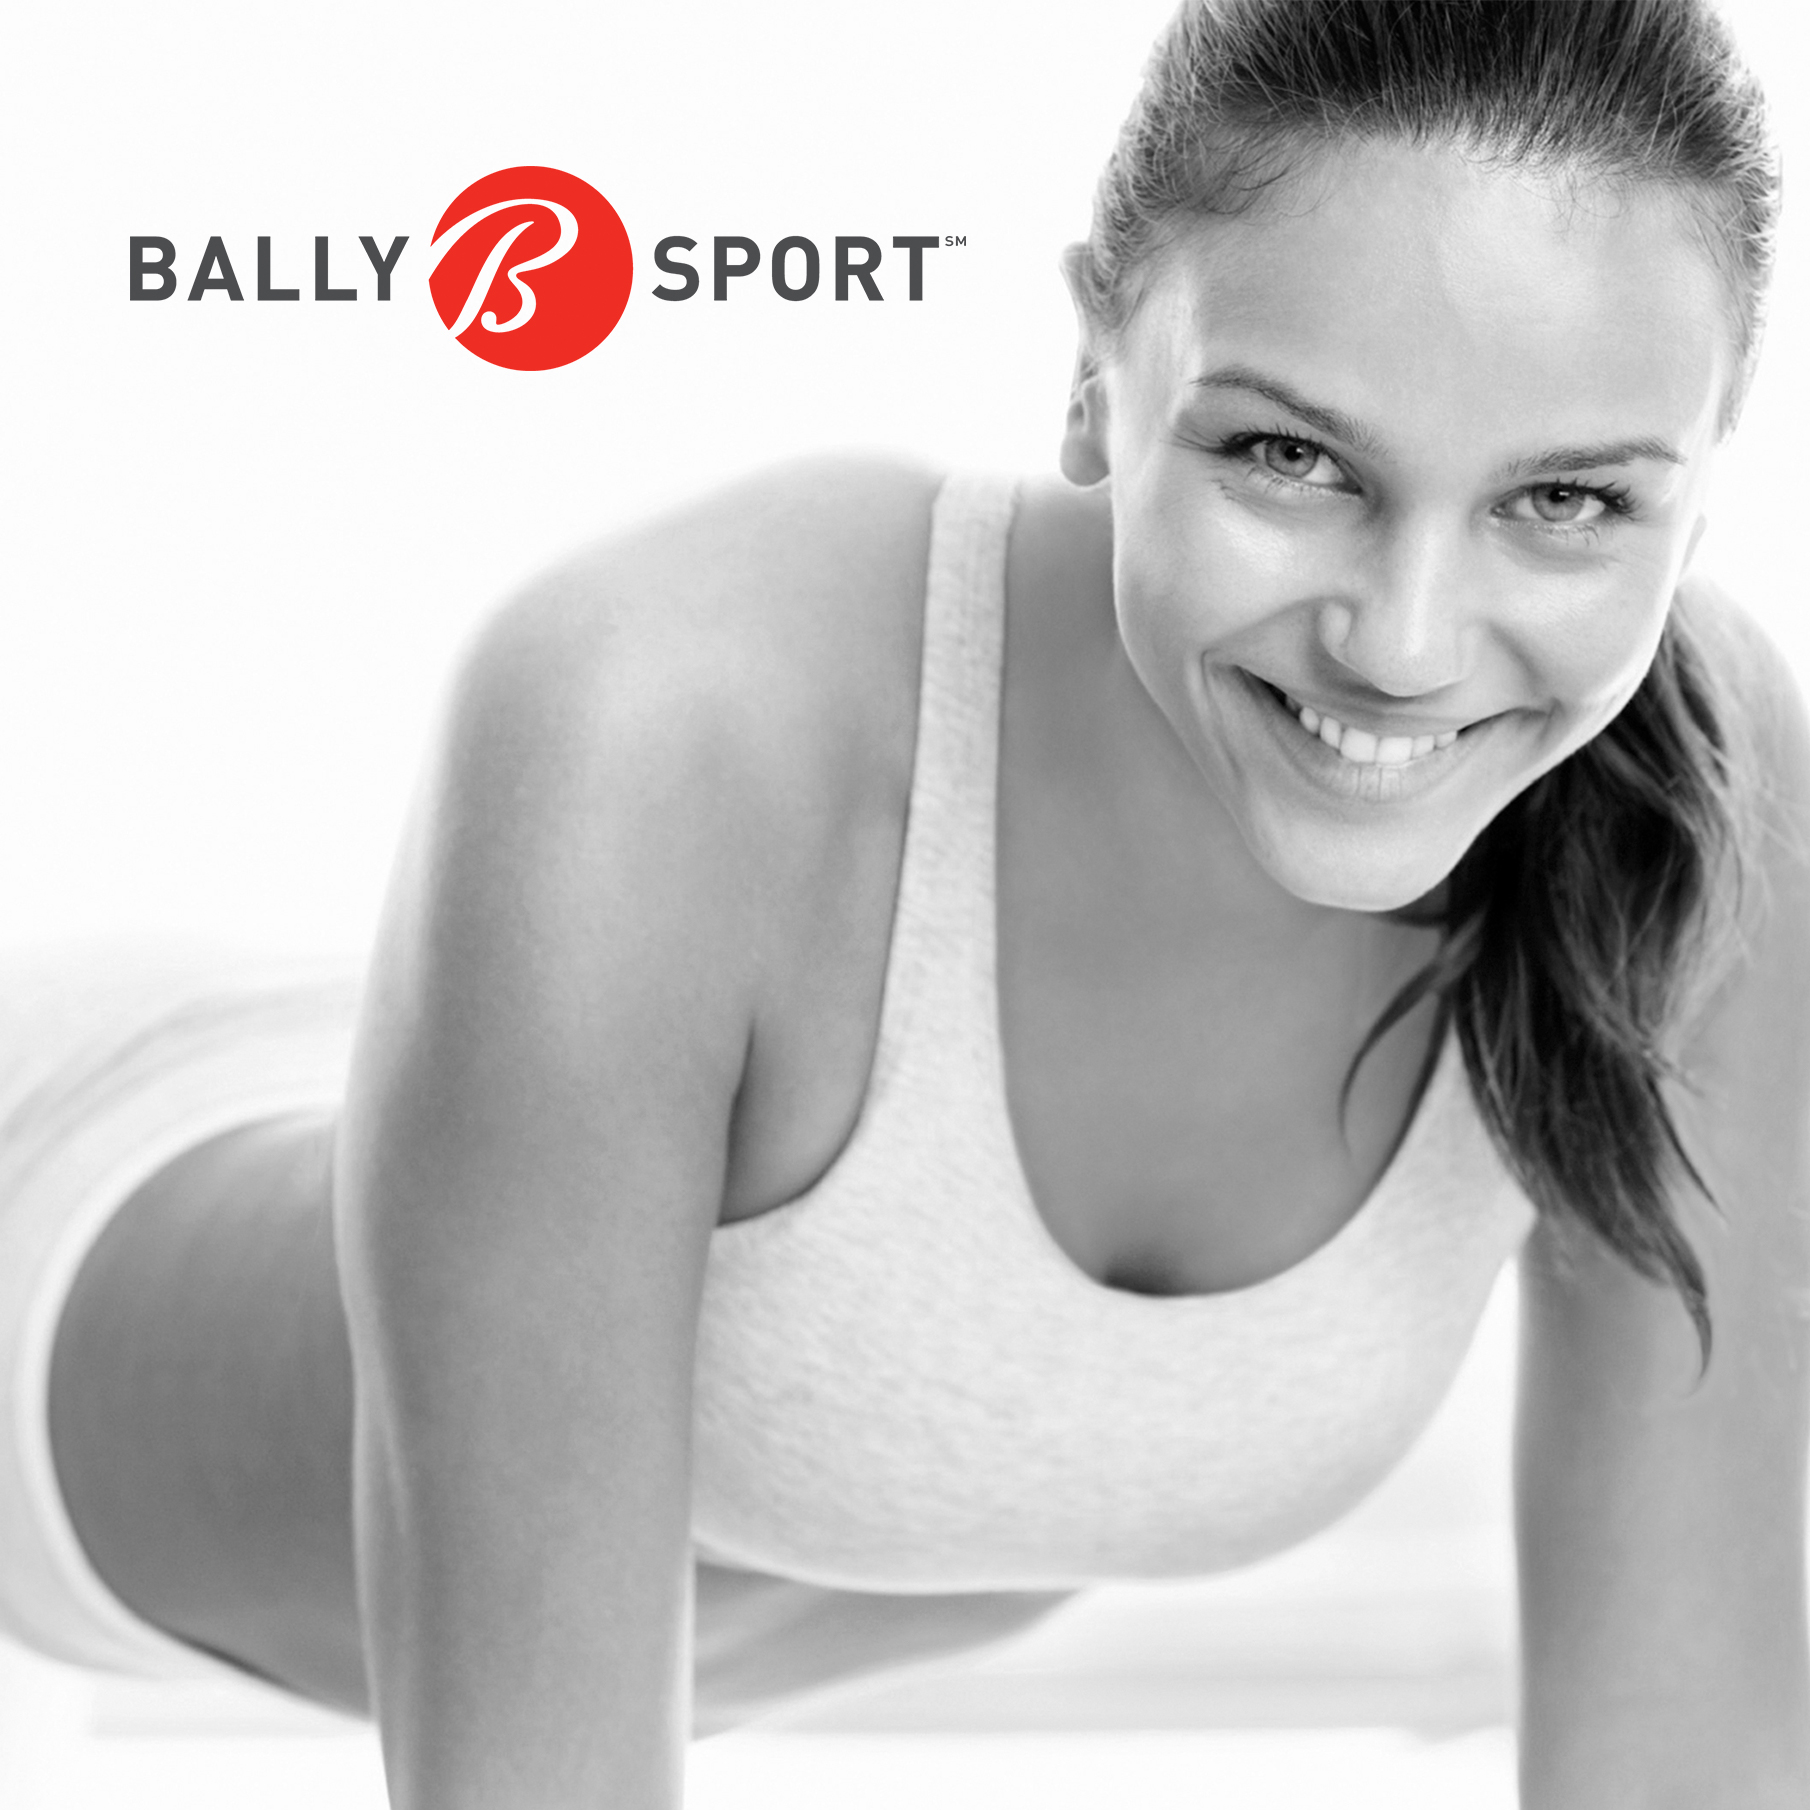 Bally Total Fitness  PRINT DESIGN